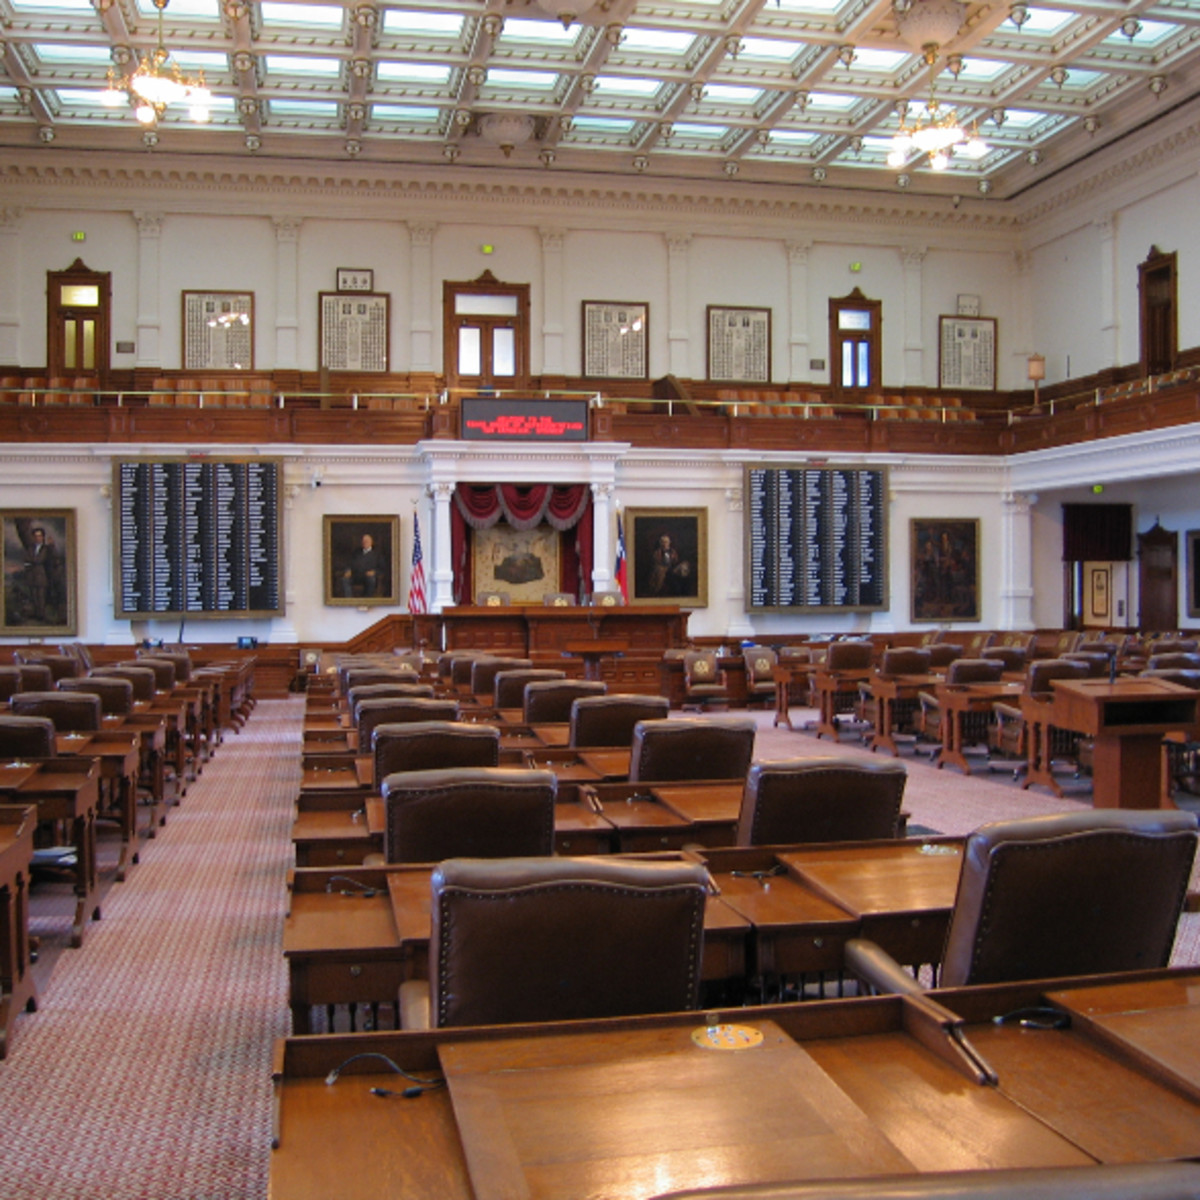 Austin Photo: Places_unique_austin_texas_state_capitol_chamber